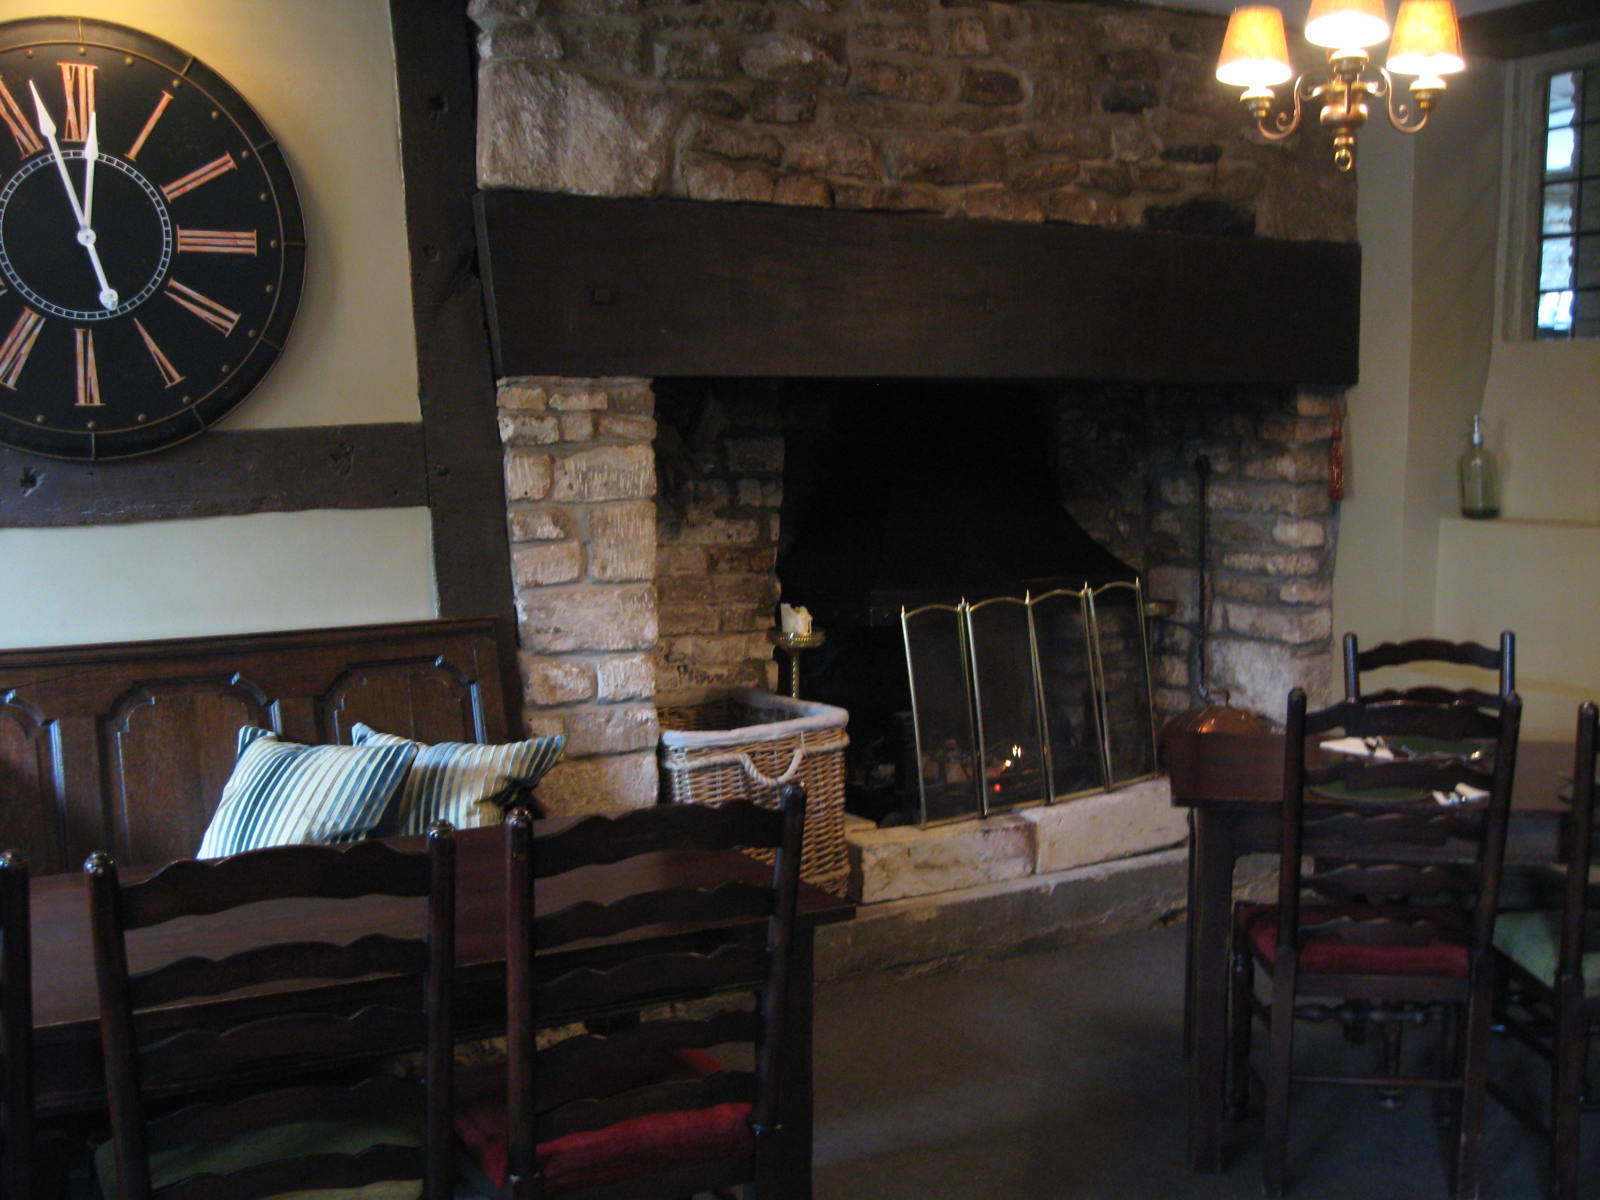 A country pub in Castle Combe. Photo by me